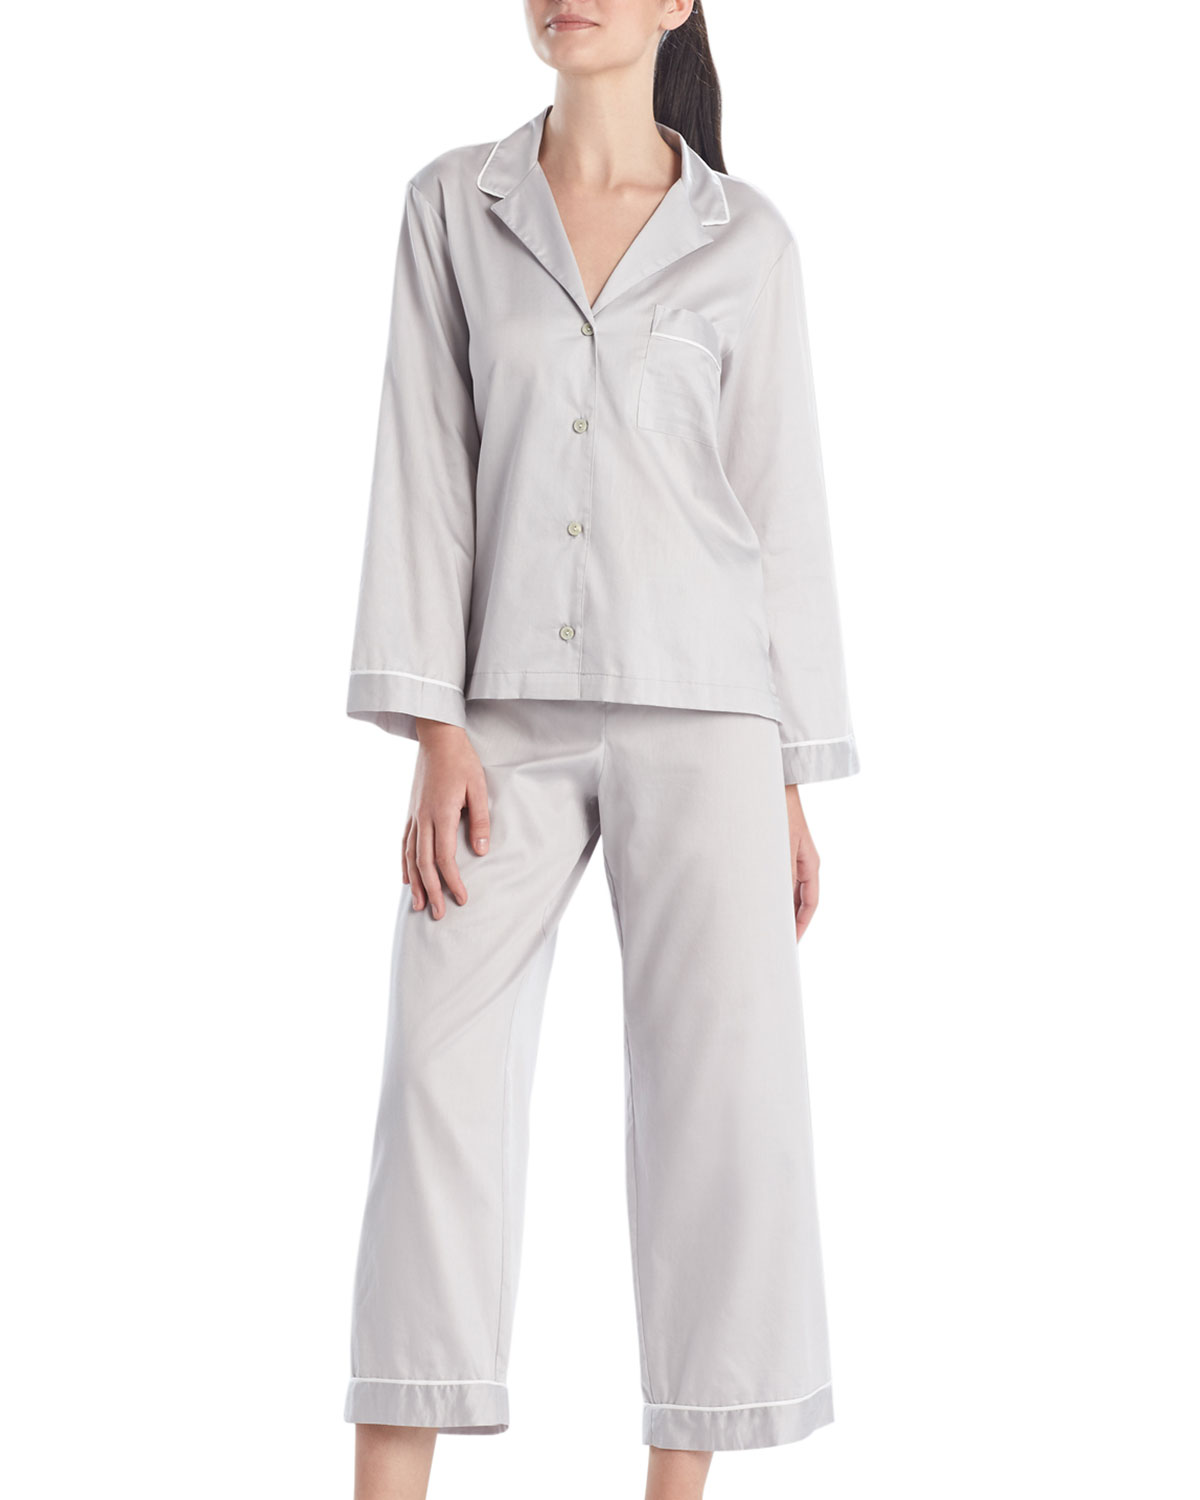 Natori COTTON SATEEN ESSENTIALS PAJAMA SET